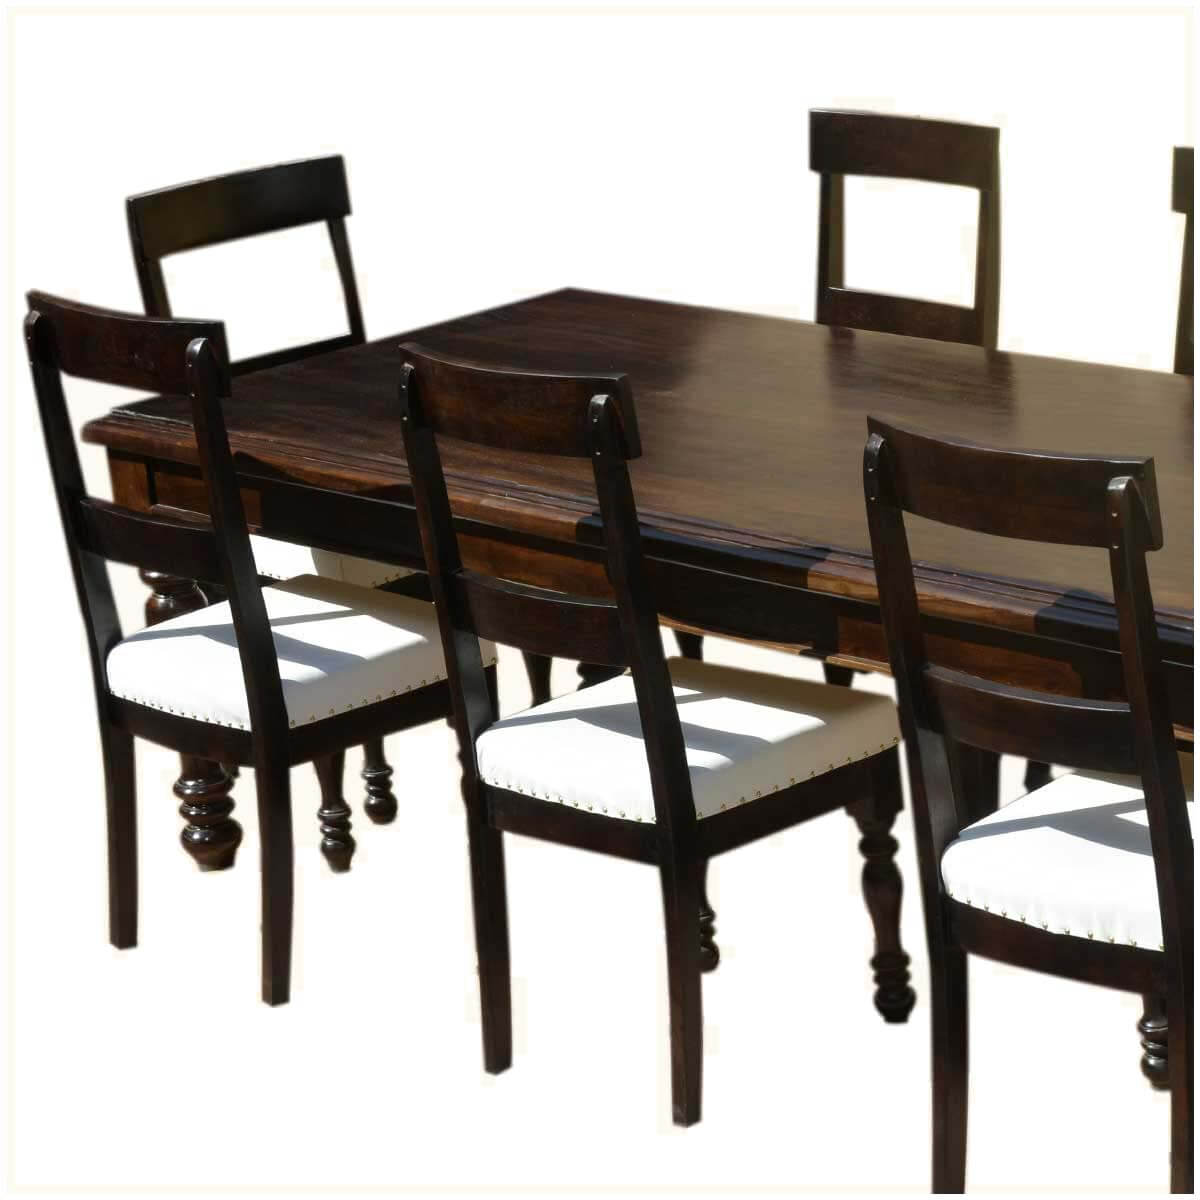 American Acacia wood Dining Table amp Leather Upholstered Chairs : 53002 from www.sierralivingconcepts.com size 1200 x 1200 jpeg 99kB